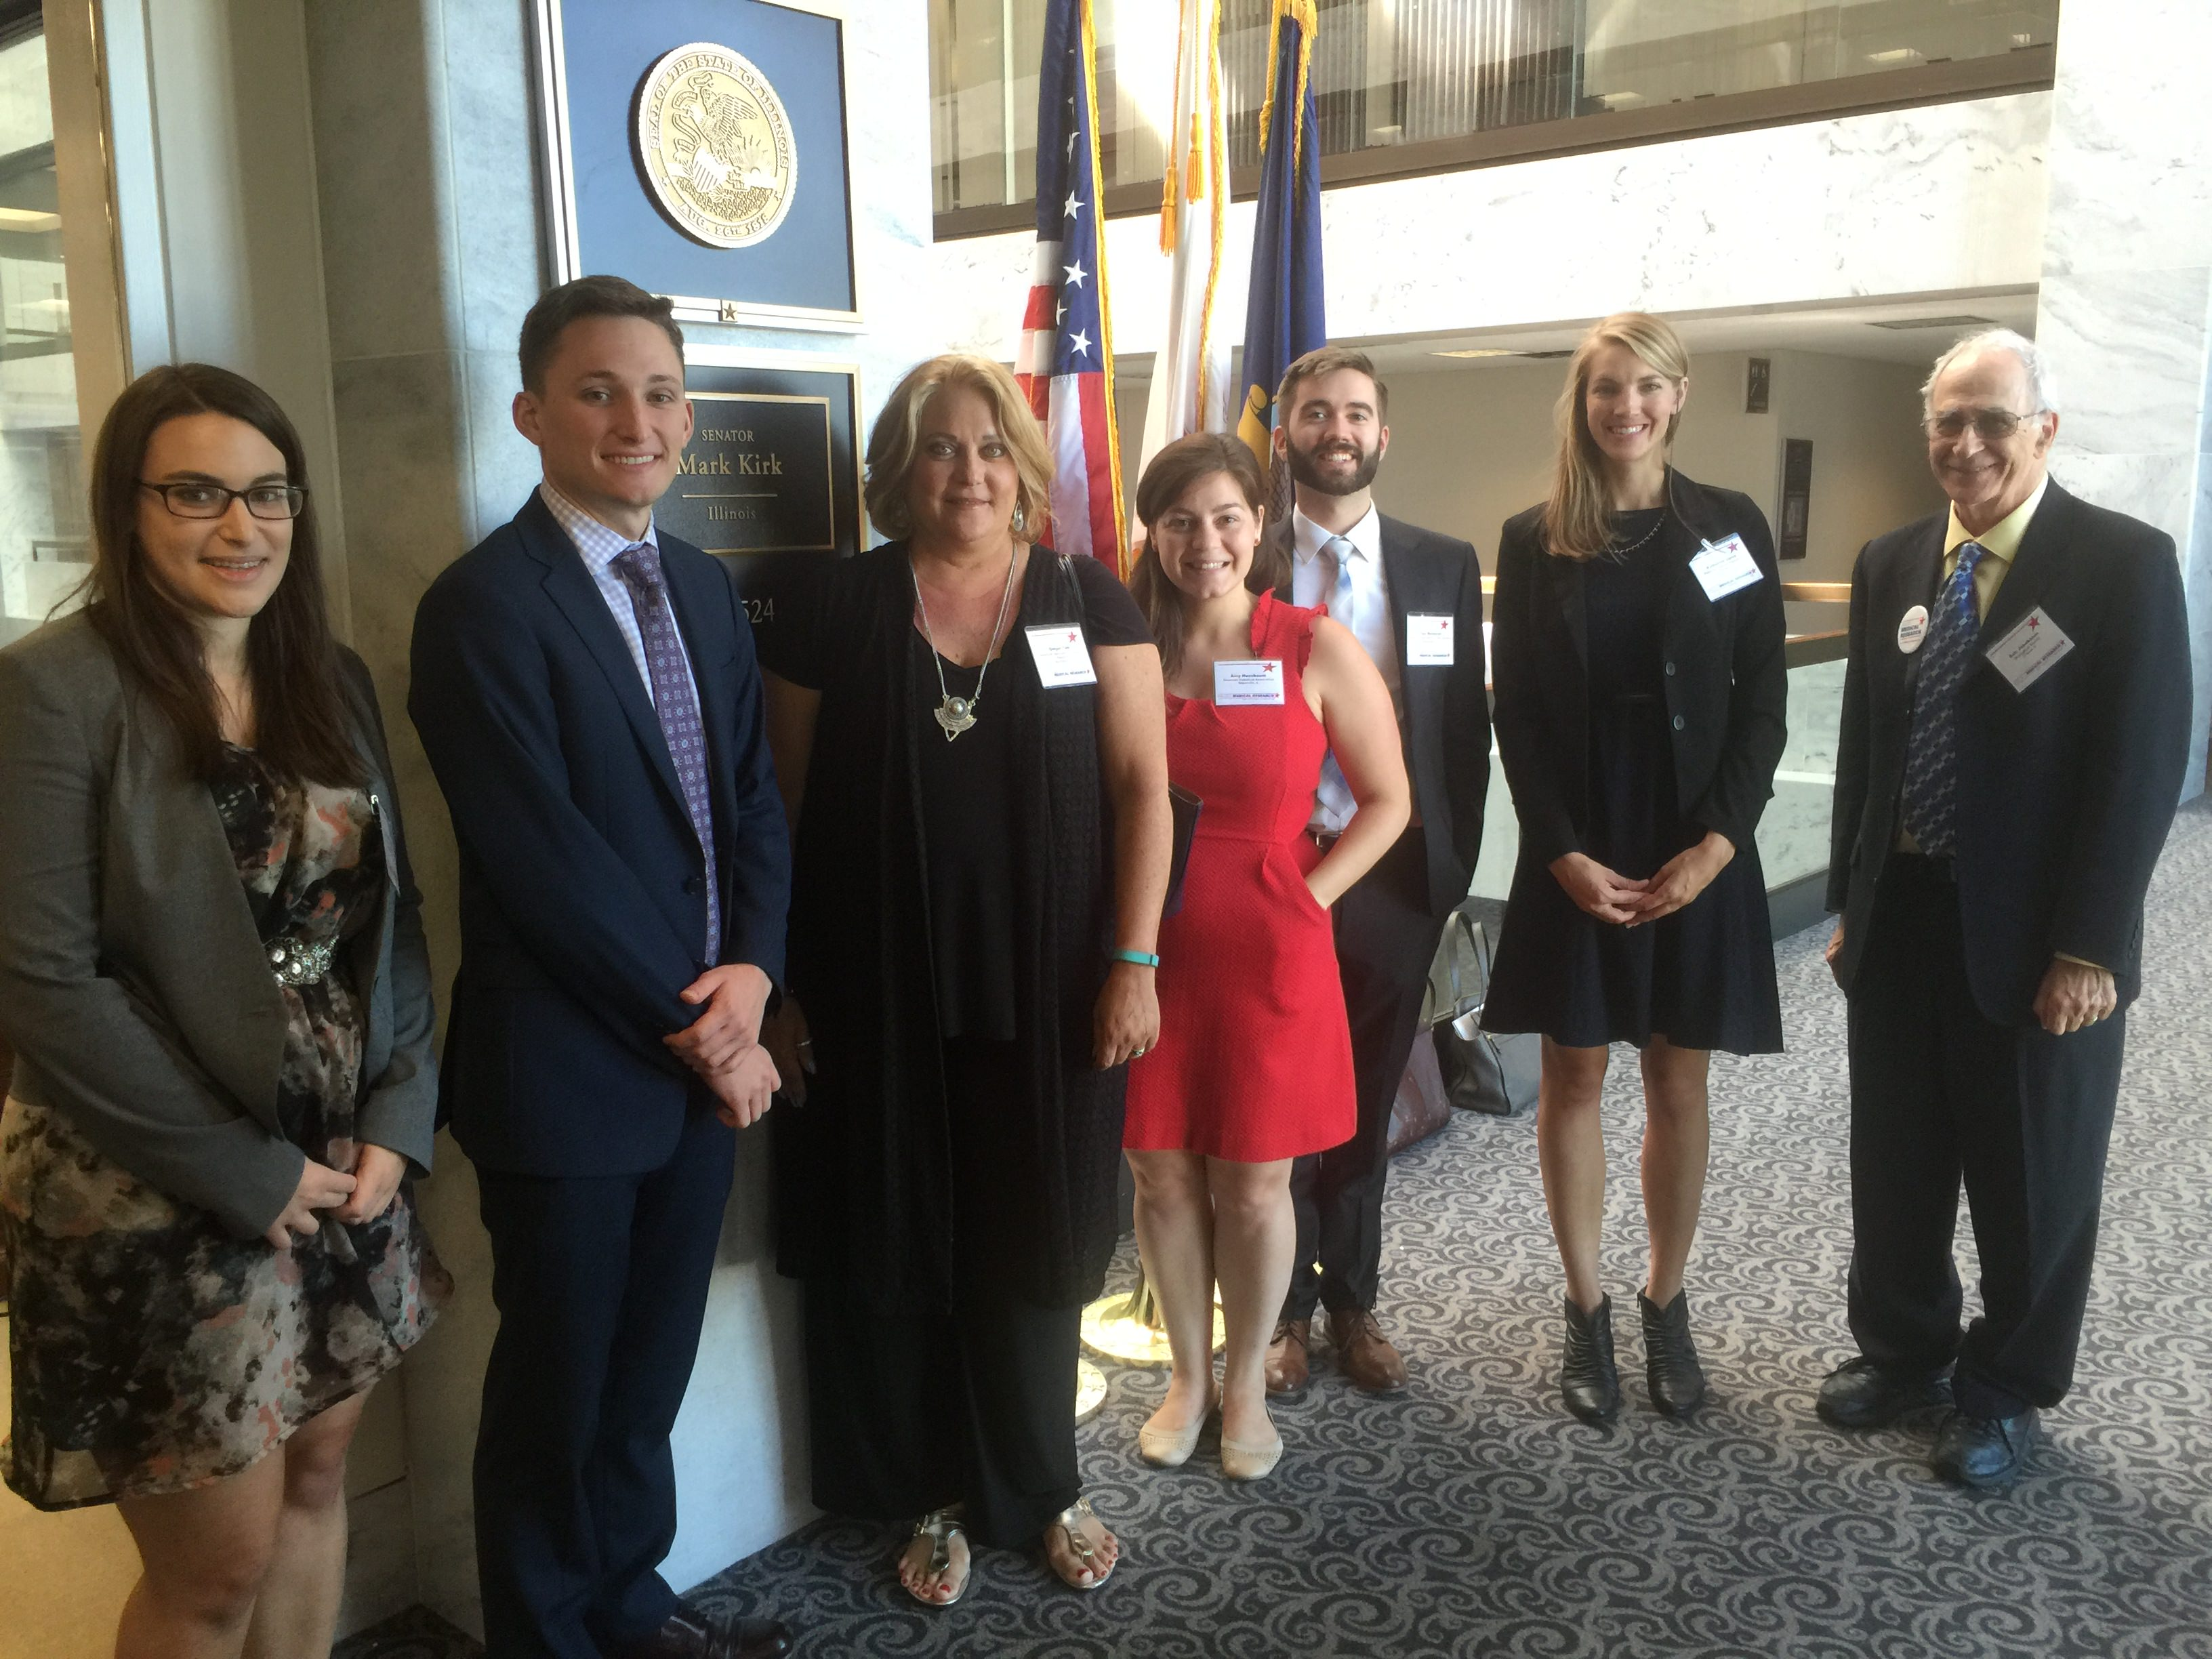 Eric Jakobsson (far right) visits the office of Senator Mark Kirk to advocate for NIH funding as part of the Rally for Medical Research.